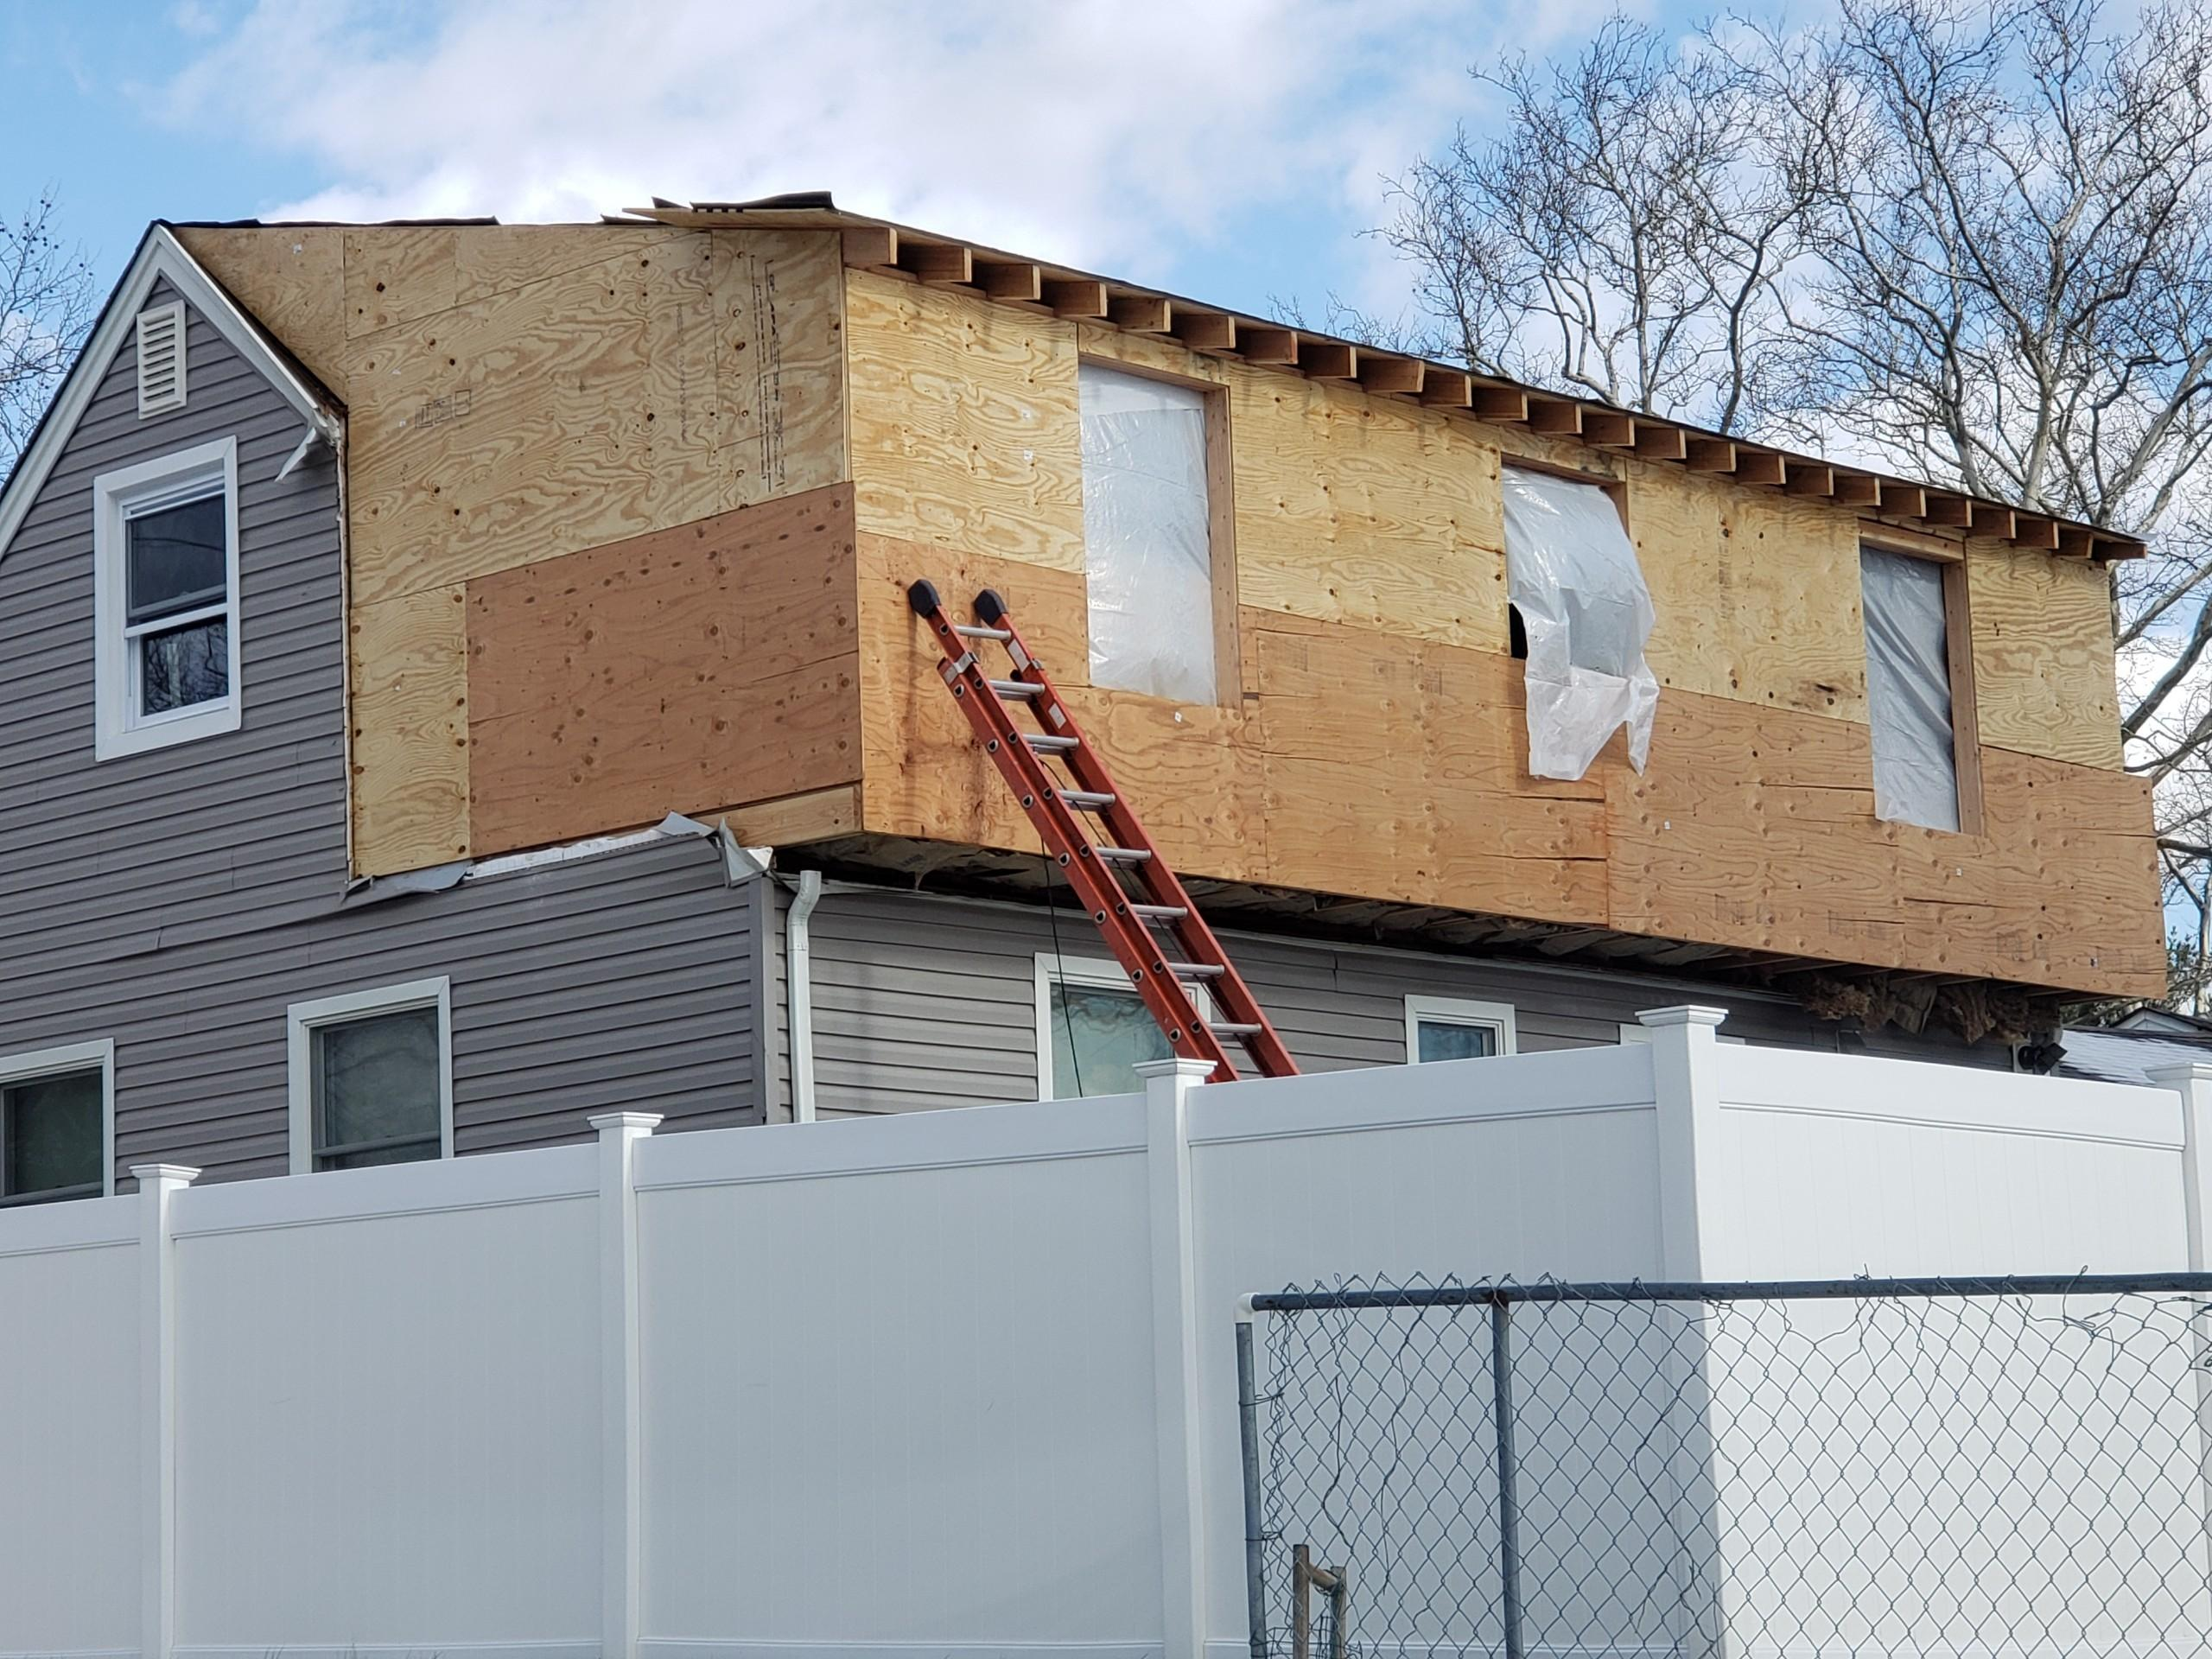 home remodeling addition renovation add a level contractors in sayreville parlin south amboy nj